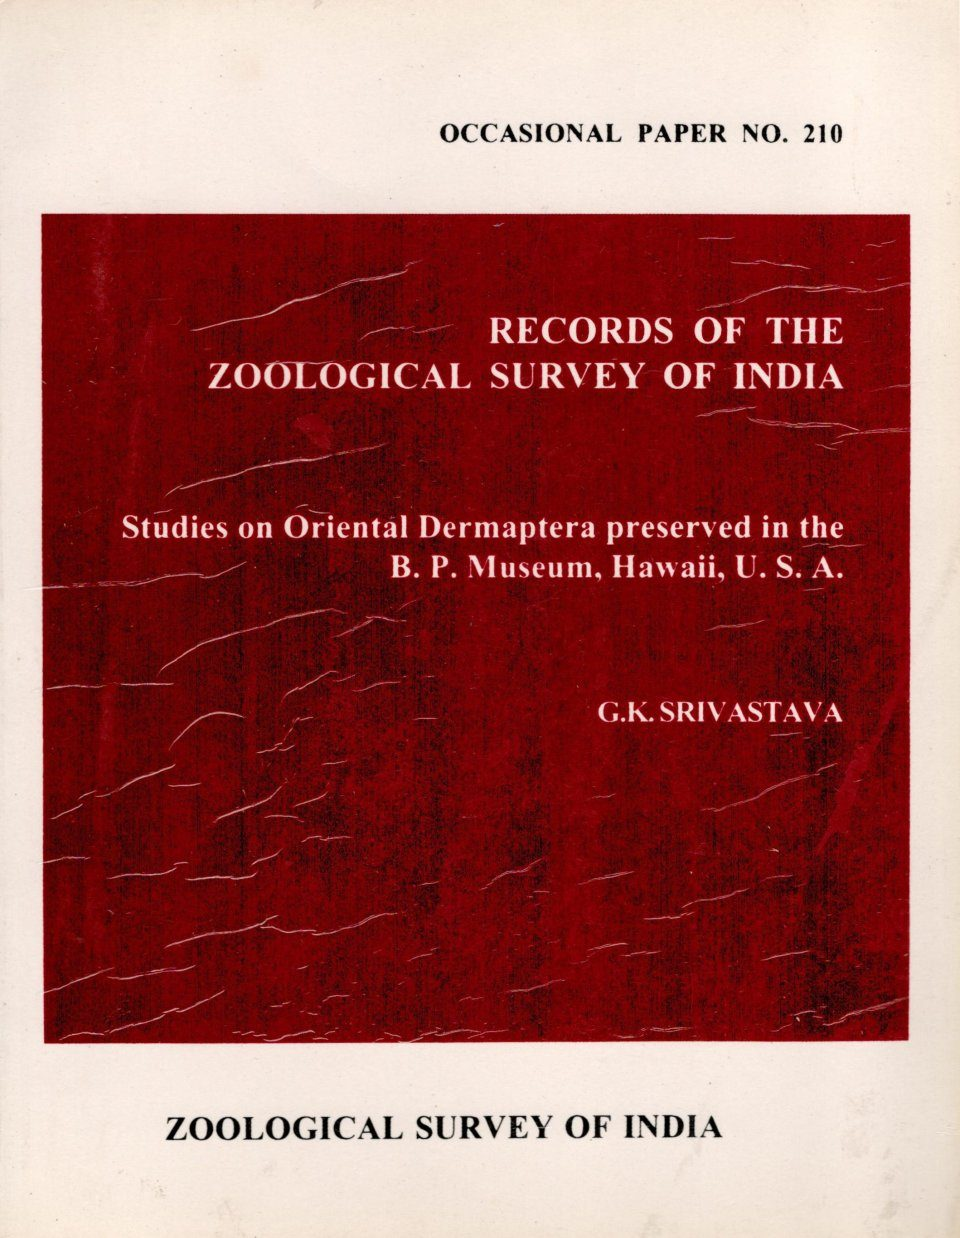 Studies on Oriental Dermaptera Preserved in the B.P. Museum, Hawaii, U.S.A.